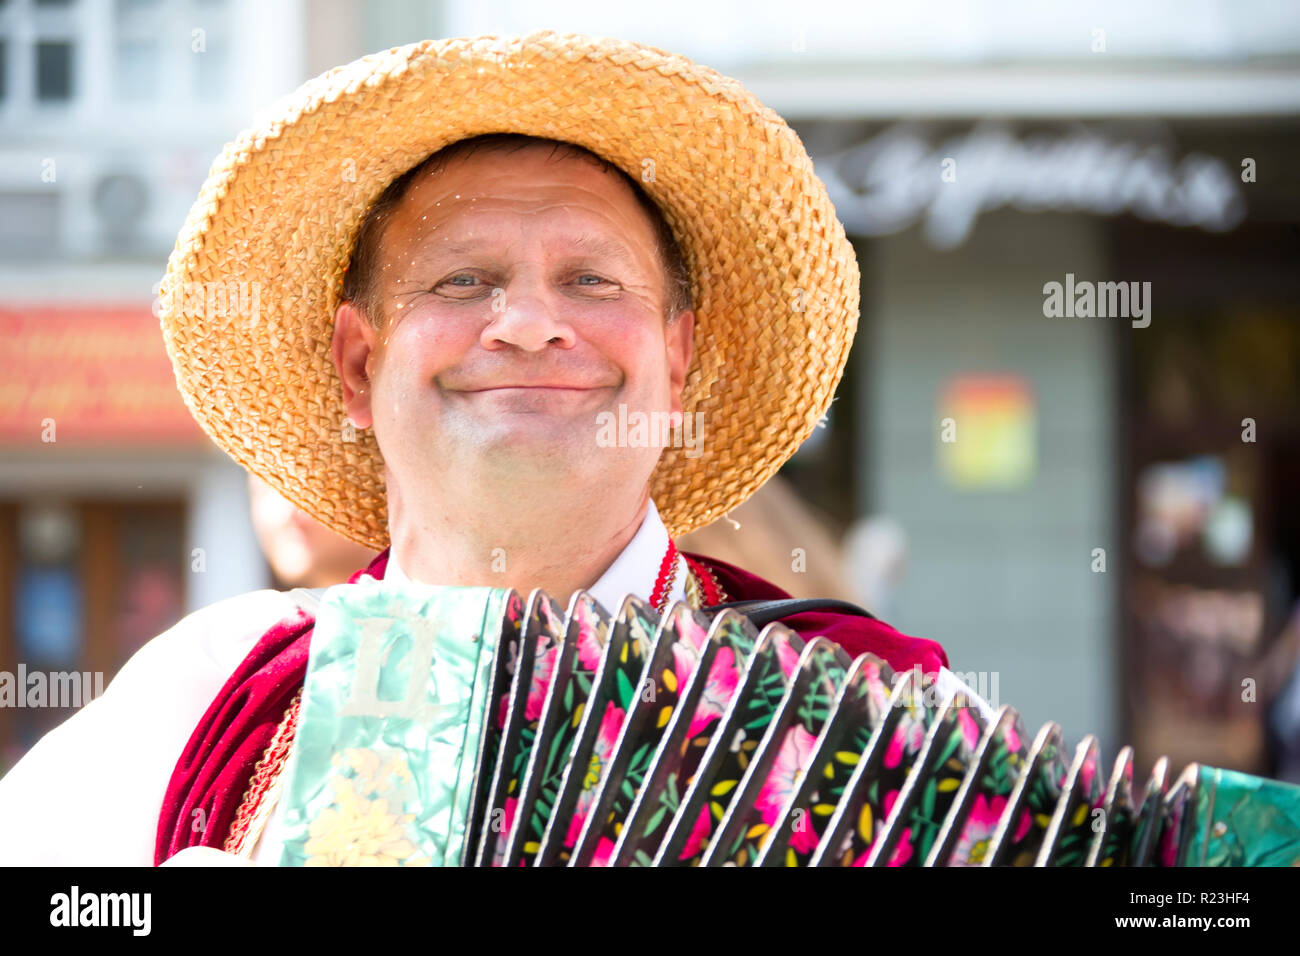 .A man in a straw hat playing the harmonica.Harmonist - Stock Image